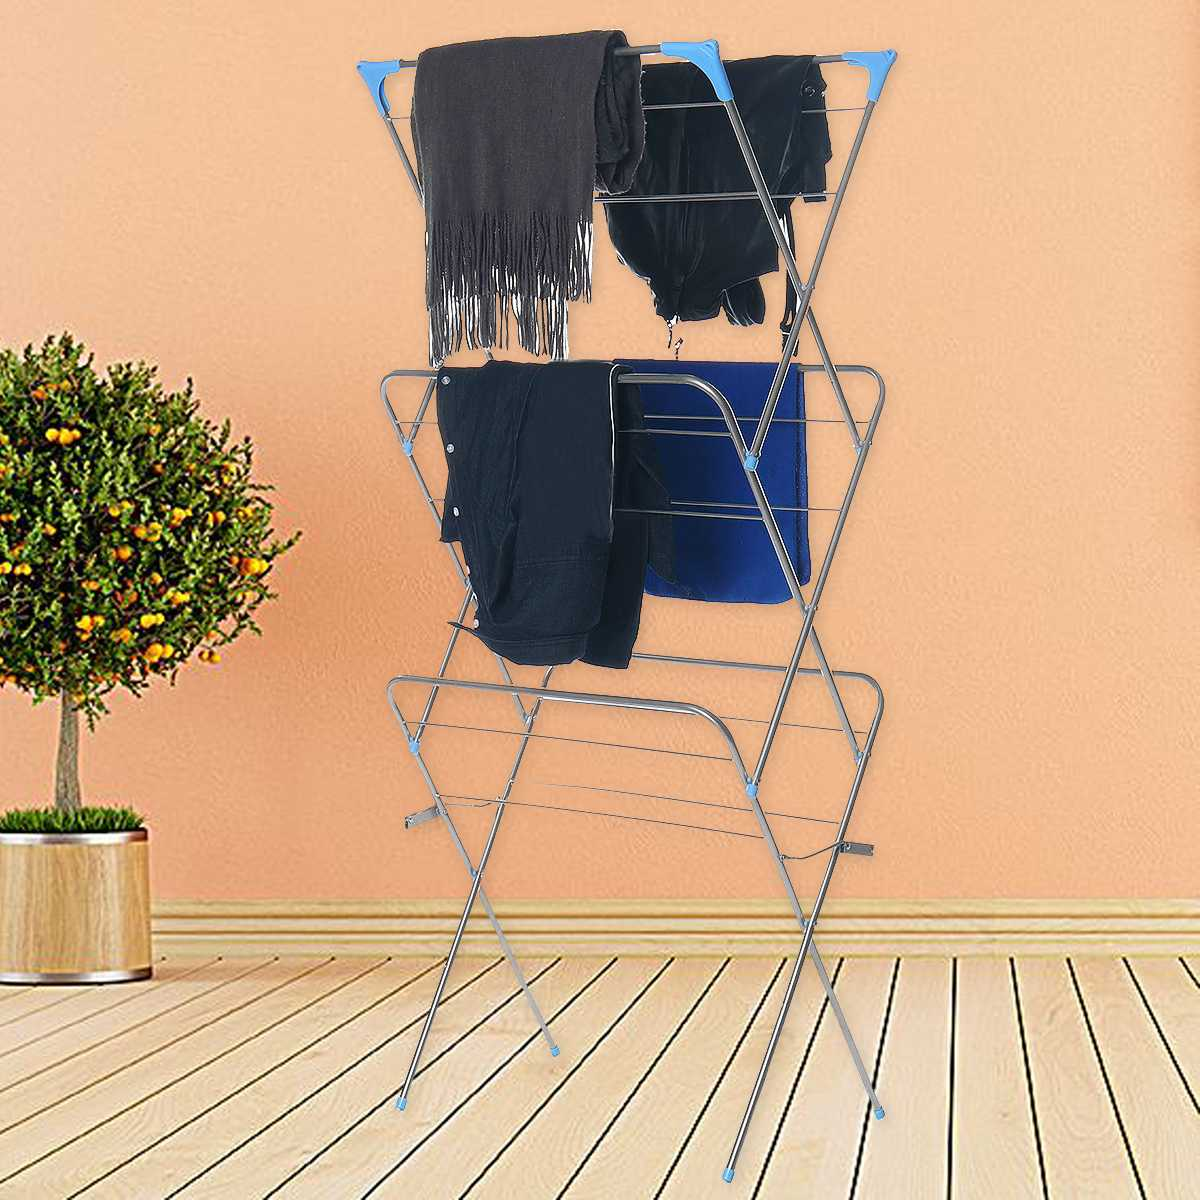 Three Layers Floor-Standing Clothes Drying Rack Hangers Foldable Clothes Airer Iron Durable Clothes Drying Airer Rack For Towel